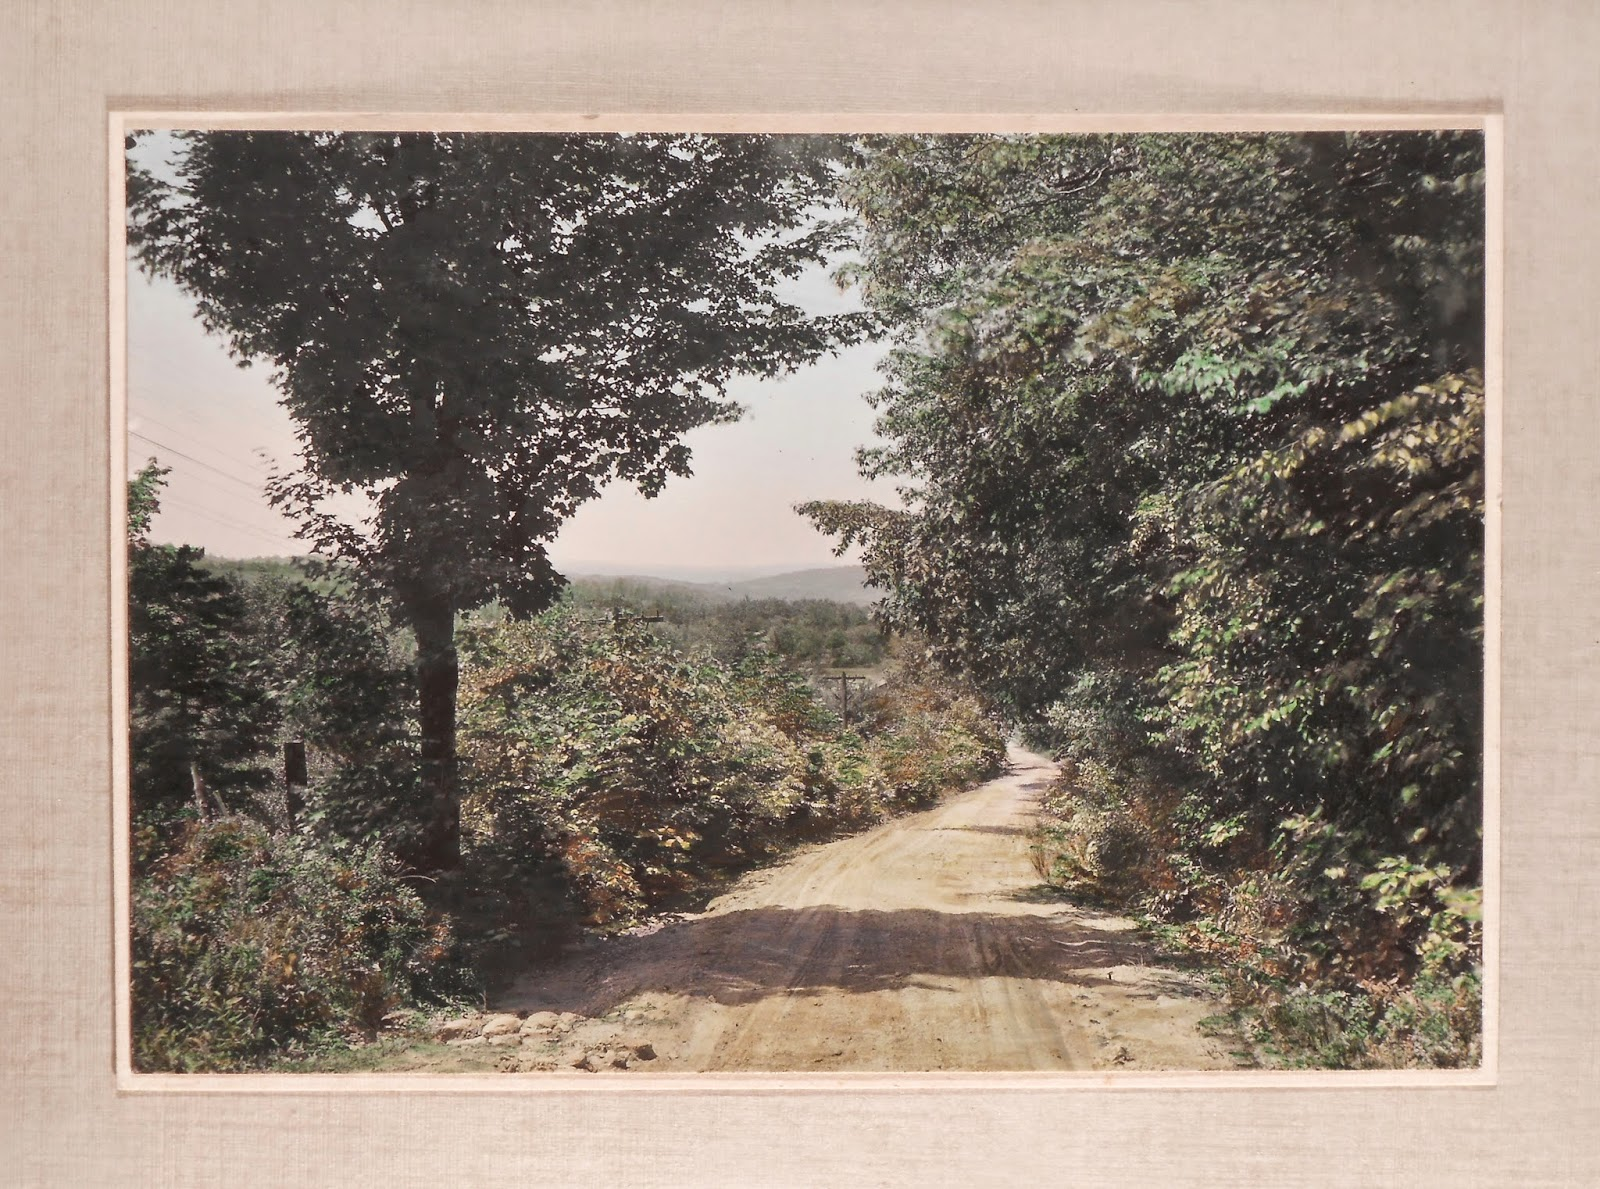 A color photograph of a dirt road framed by trees and greenery.